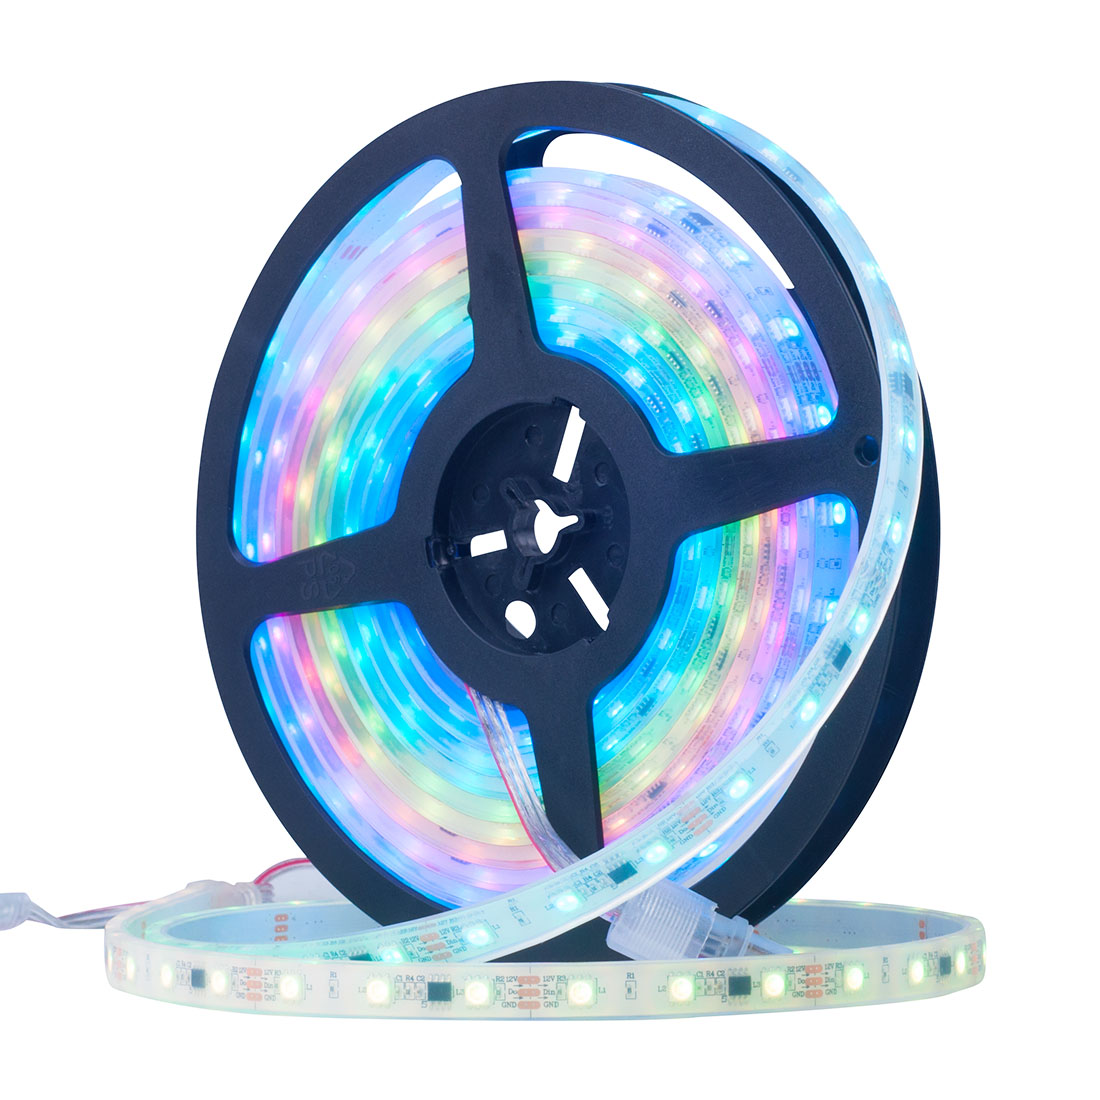 Official Website Wholesale 5m Ws2811 Led Strip Dc12v Ultra Bright Rgb Leds 30/60led/m 5050 Smd Connector In Silicone Packaging Better Waterproof Led Lighting